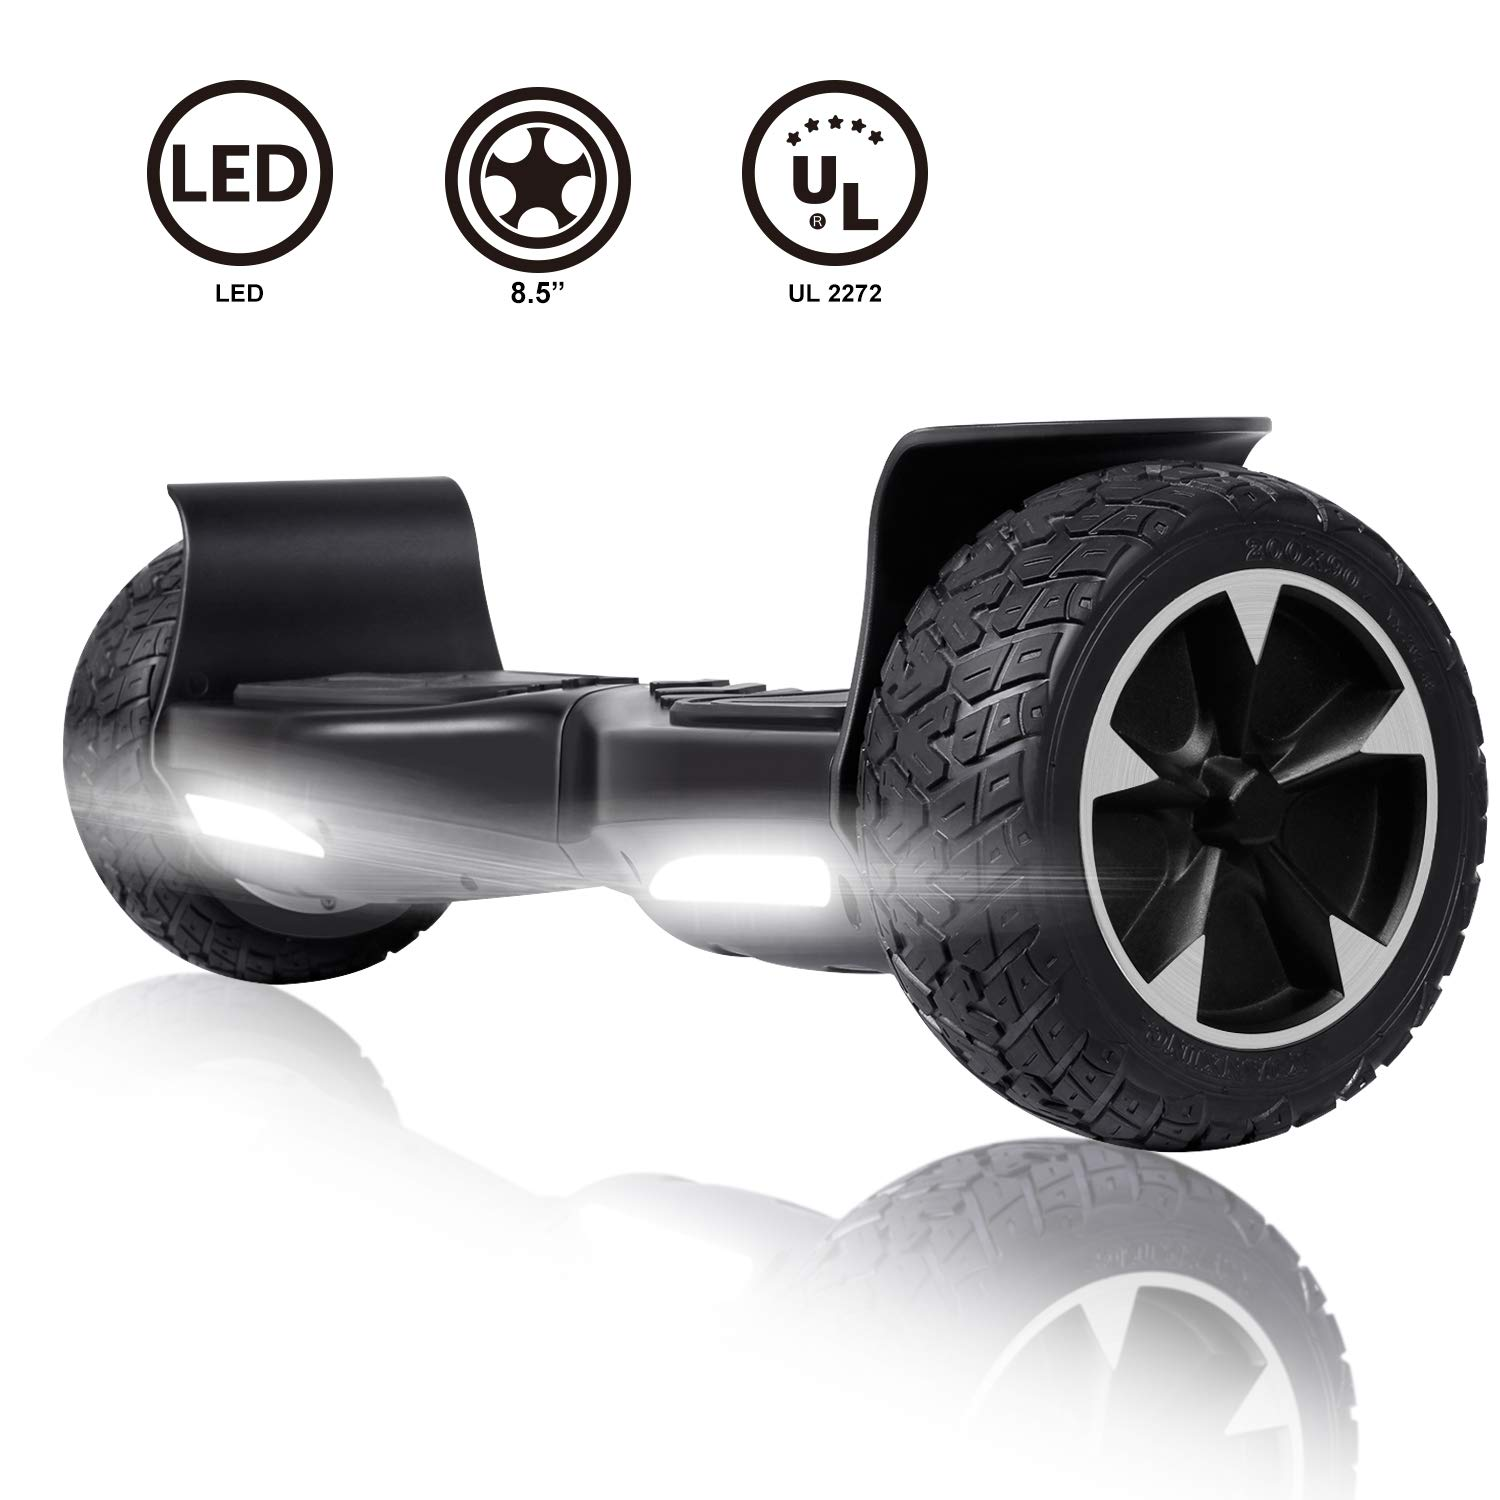 CBD Off Road Hoverboard,8.5 Inch All Terrain Hoverboard for Kids, Two-Wheel Self Balancing Hoverboard for Adults-Black by CBD